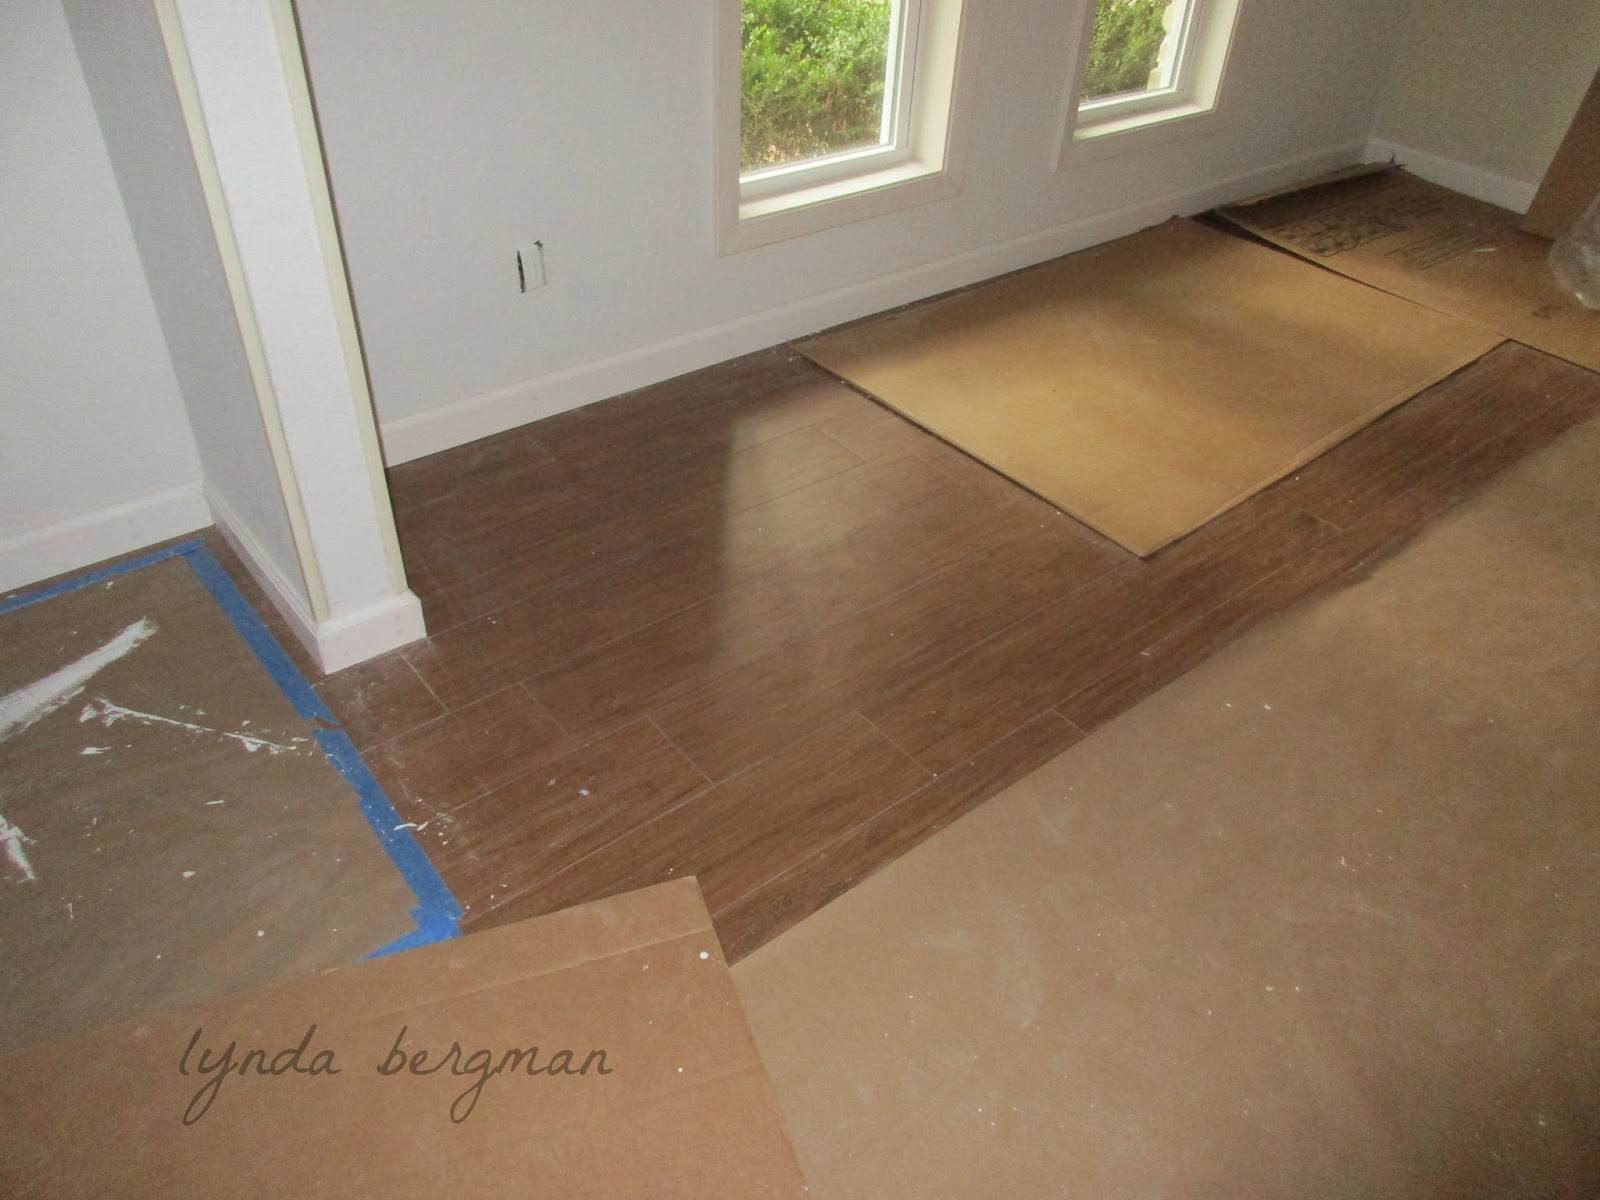 Lynda Bergman Decorative Artisan Tile Flooring That Looks Like Wood